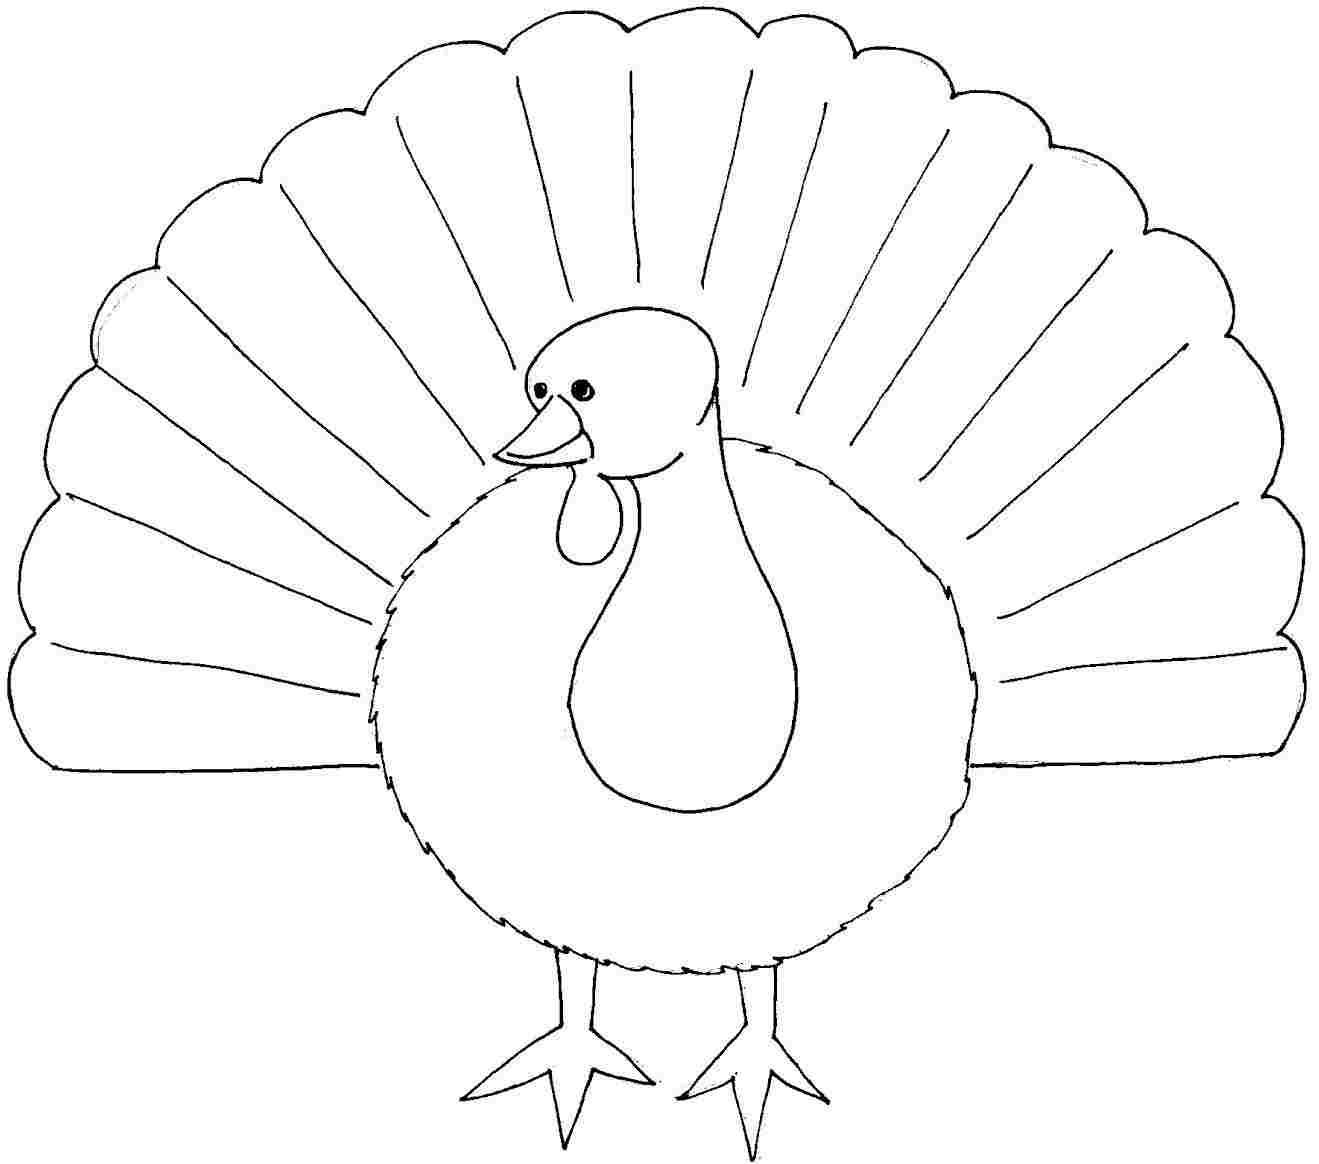 Uncategorized Turkey Printables printable free thanksgiving turkey colouring pages for kids boys 2776